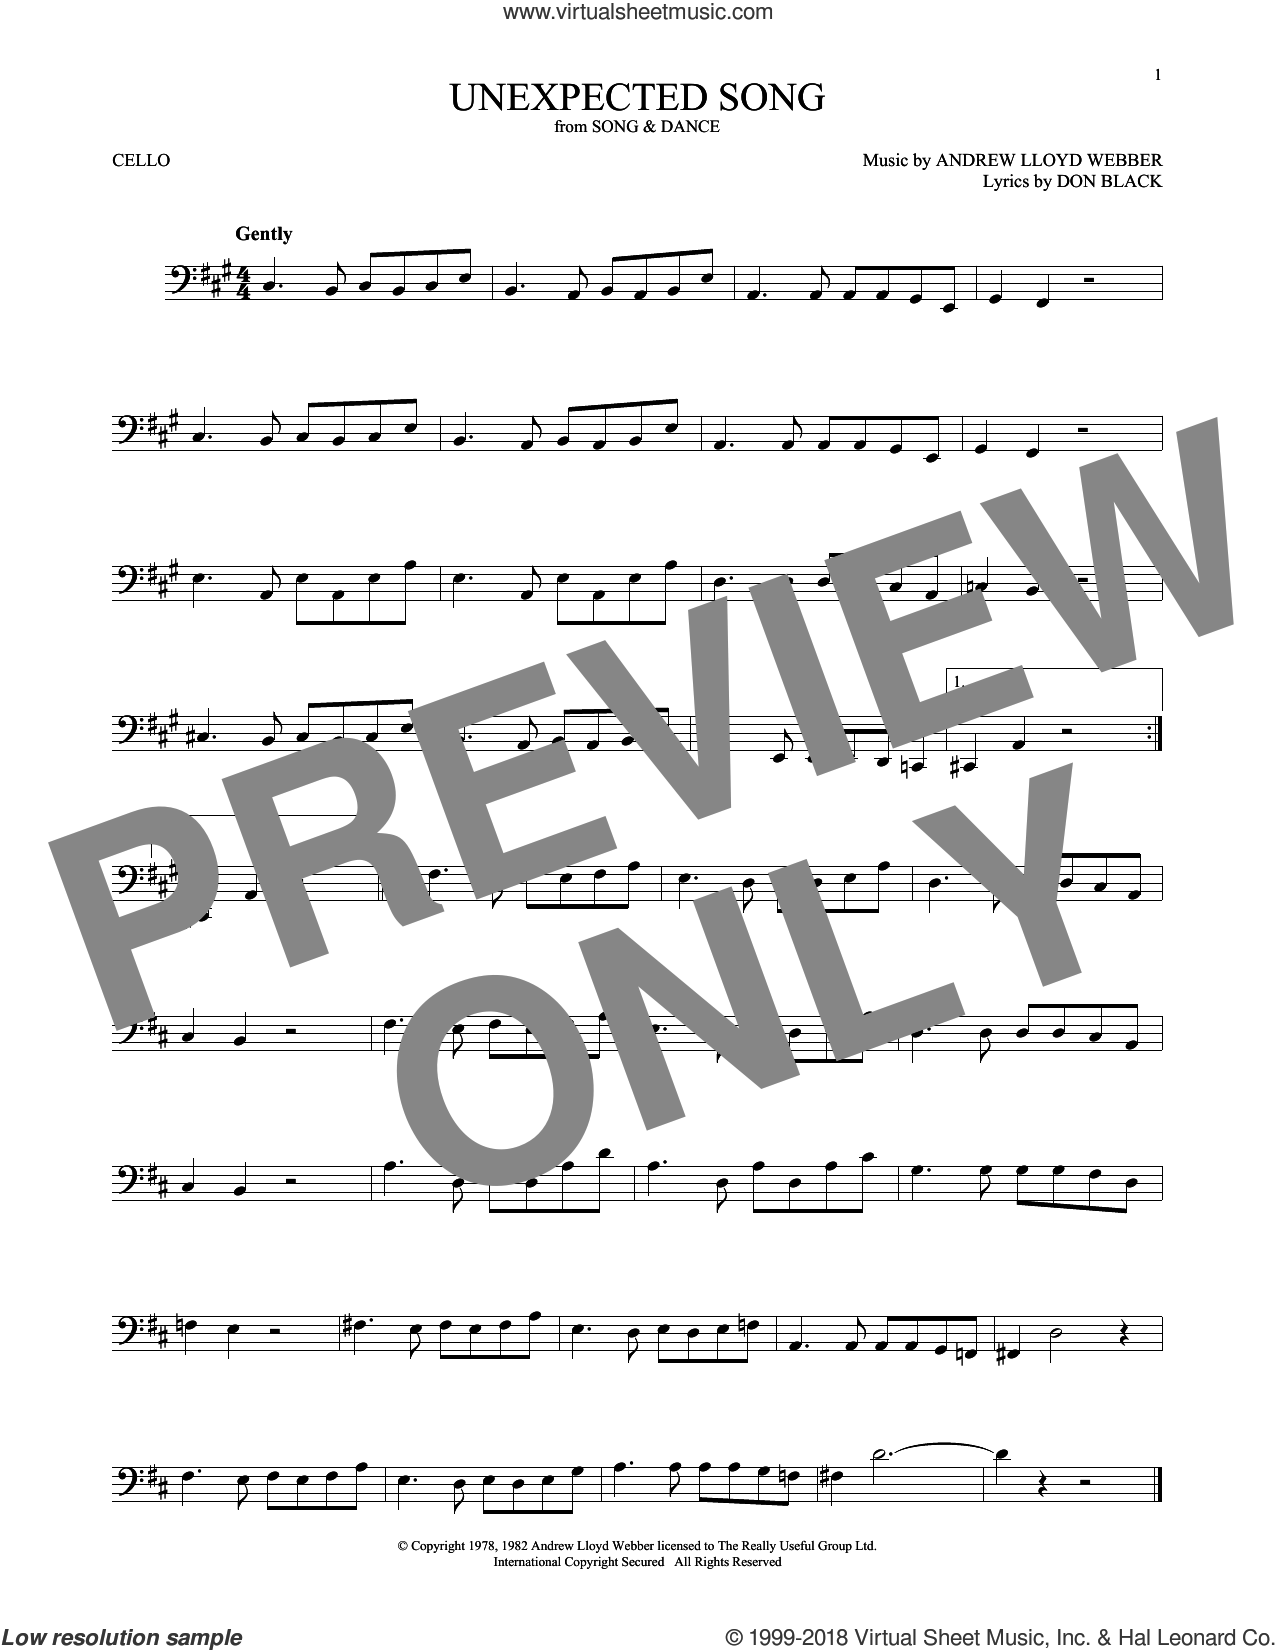 Unexpected Song (from Song and Dance) sheet music for cello solo by Andrew Lloyd Webber, Bernadette Peters, Michael Crawford and Don Black, intermediate skill level